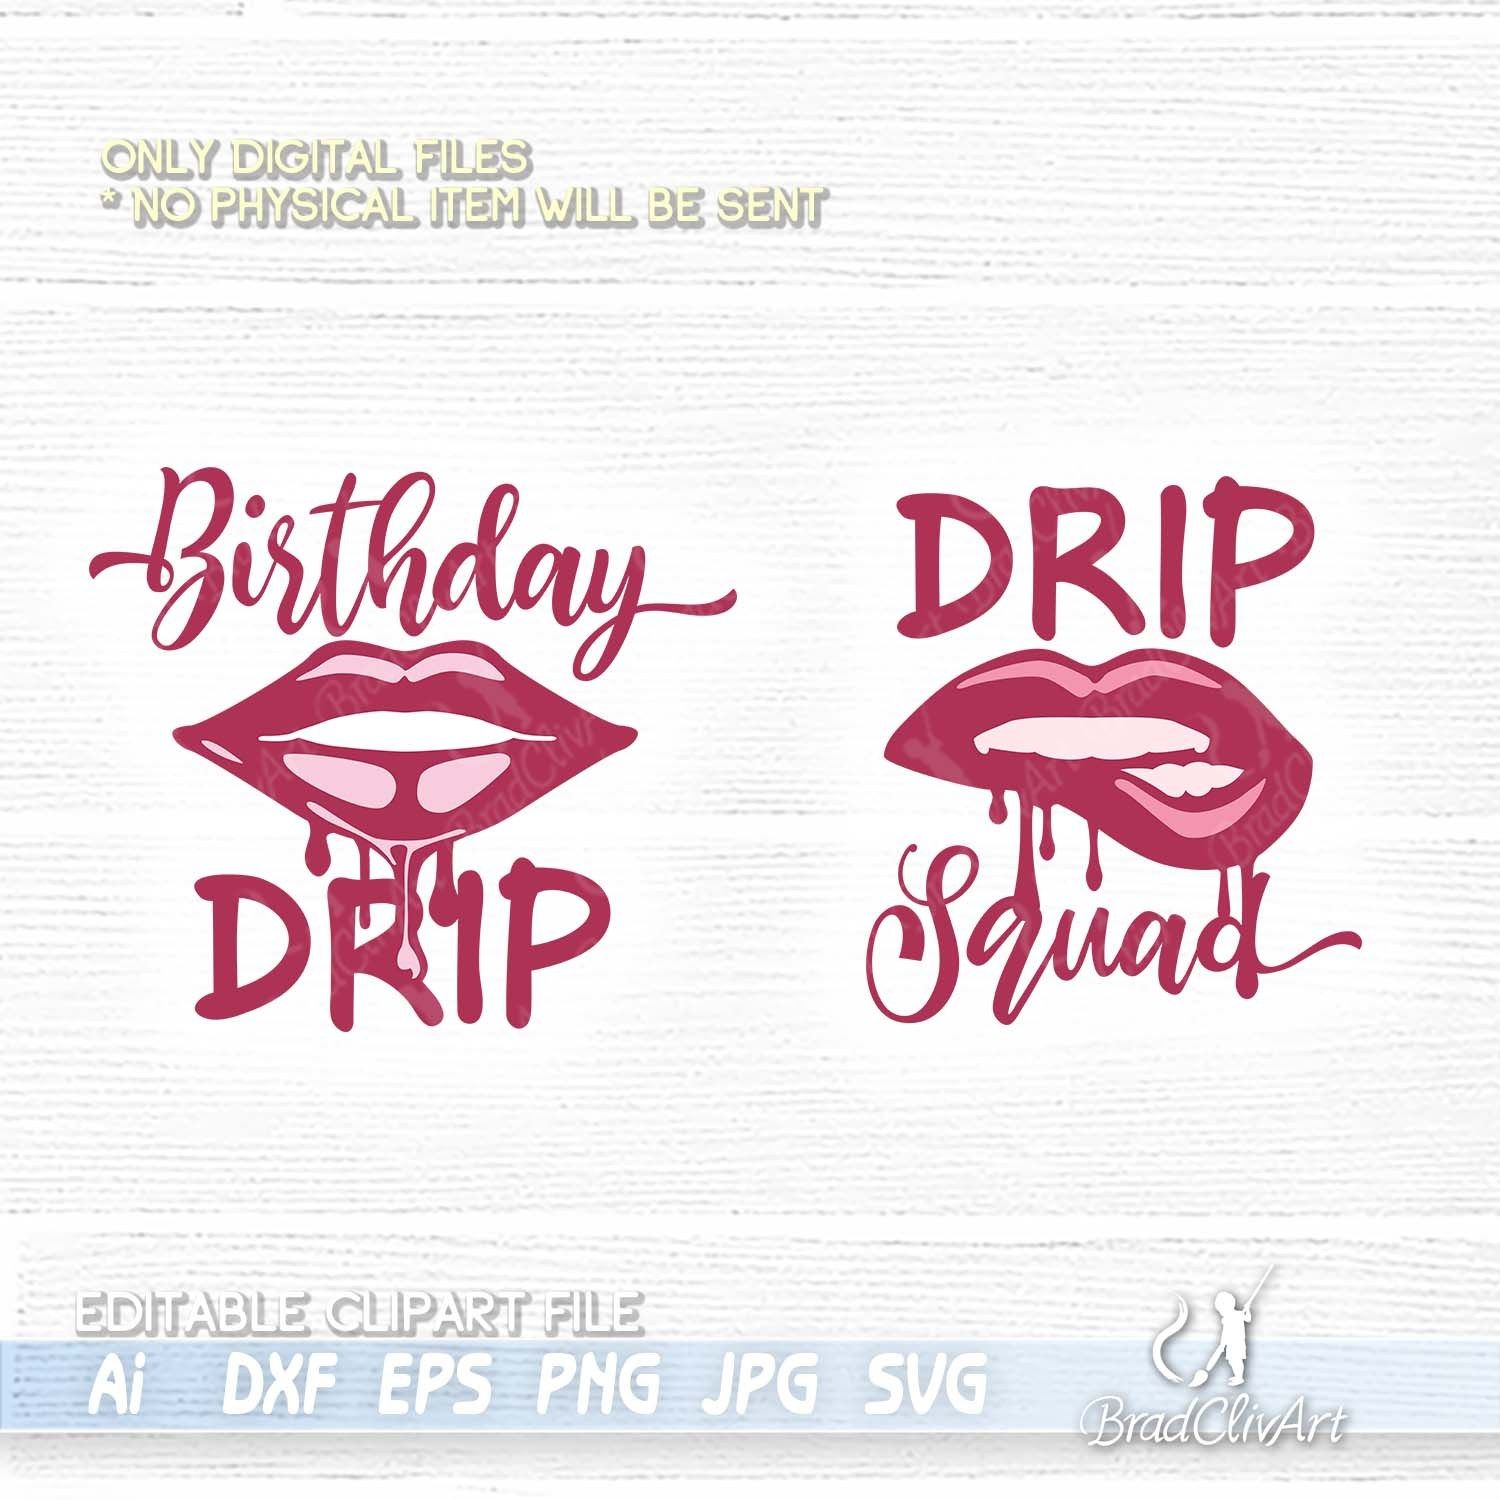 Birthday Drip SVG and Drip Squad Bundle for Cricut and